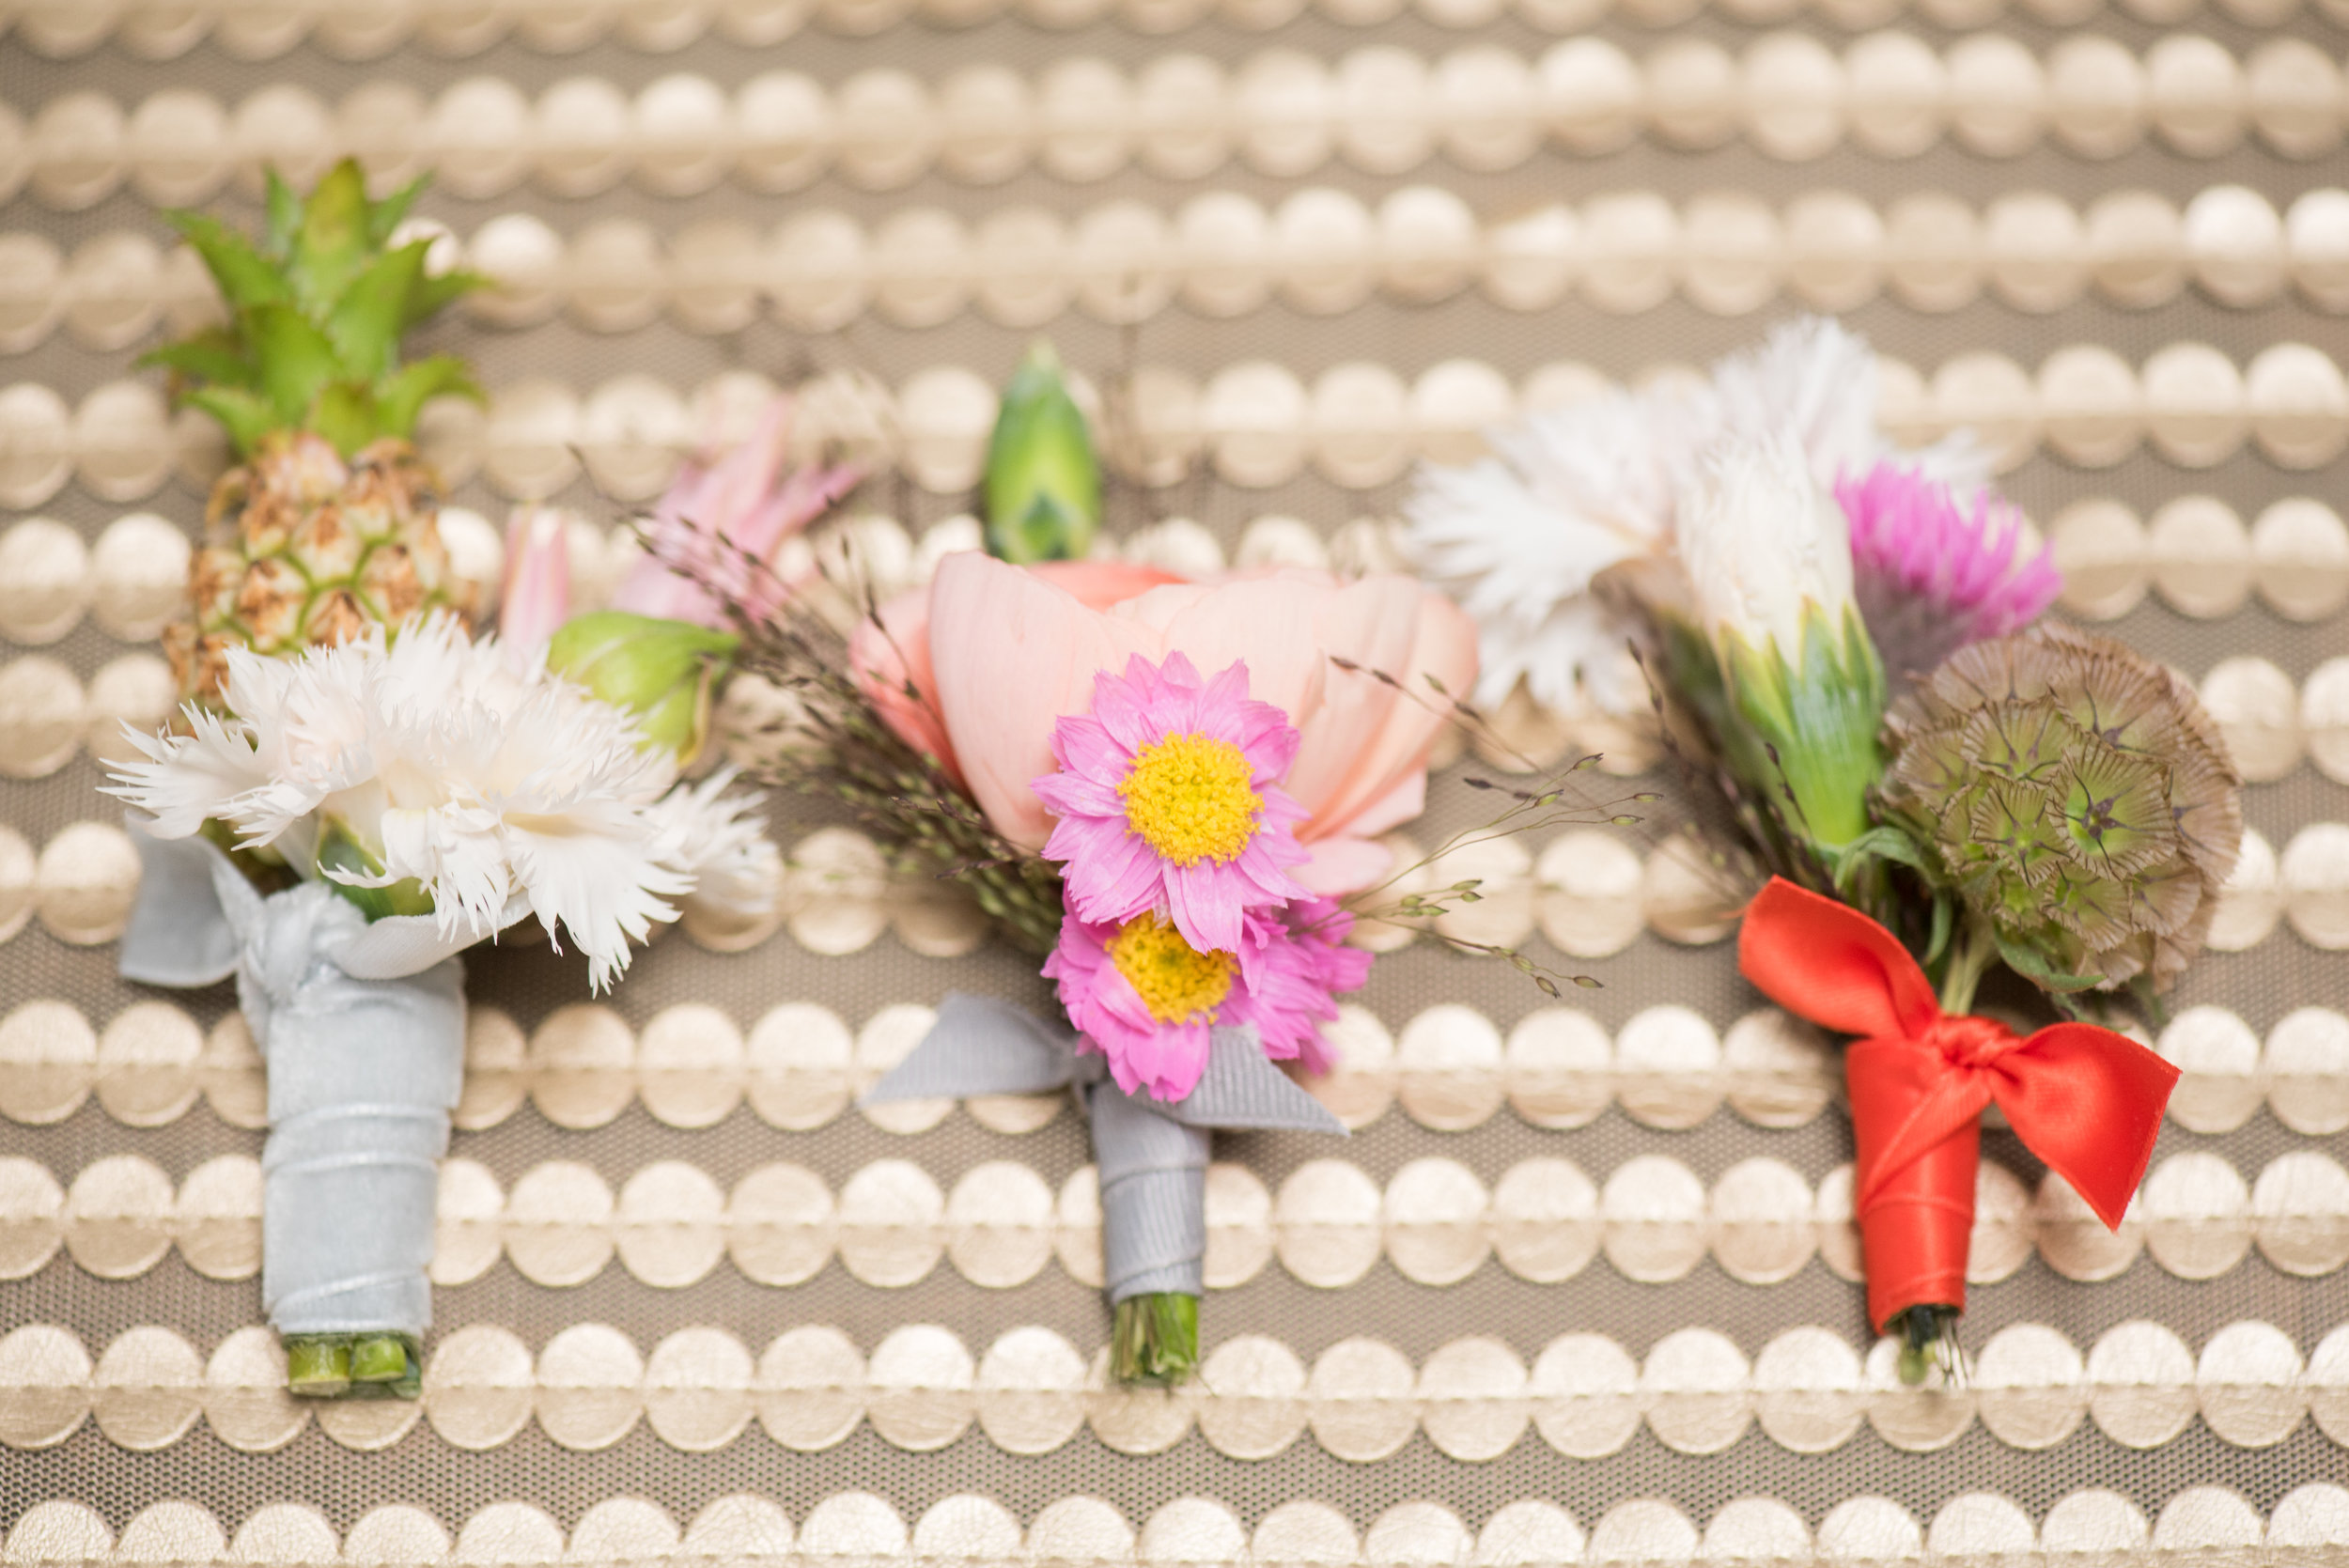 woman getting married - BOUTONNIERES YOUR GROOM WILL TOTALLY LOVE